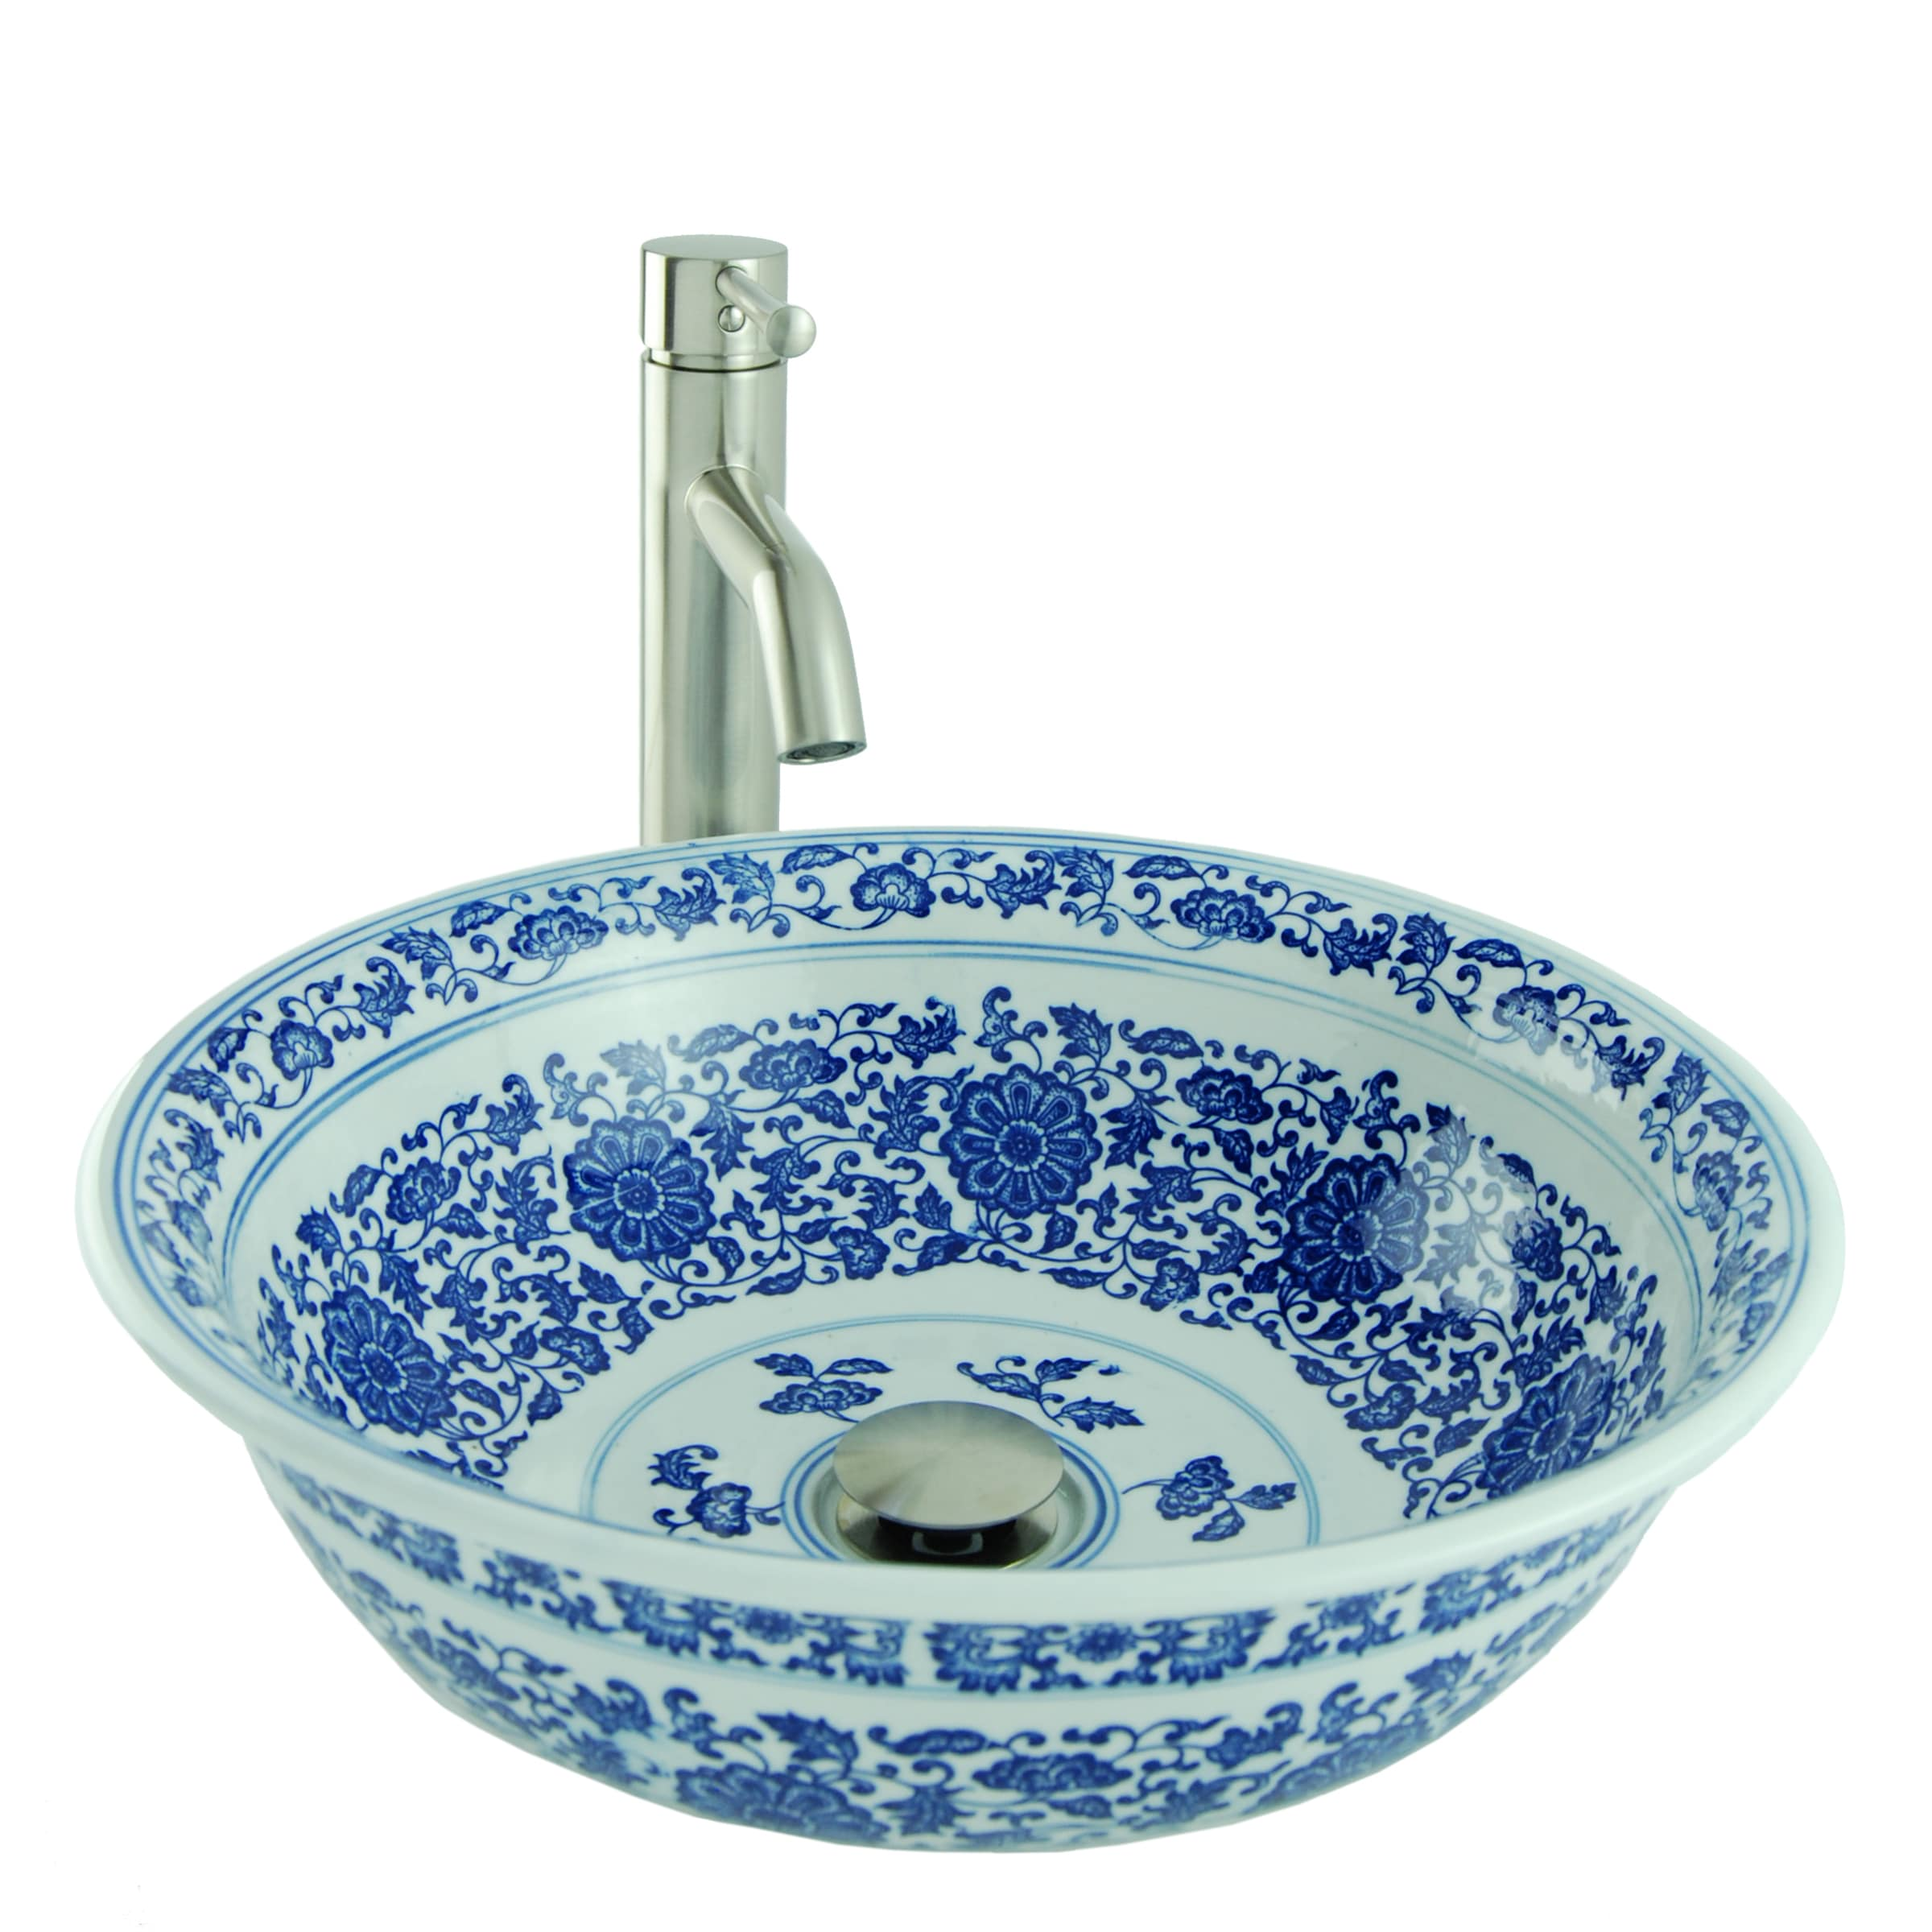 Shop Painted Round Porcelain Vessel Sink in Blue and White with ...